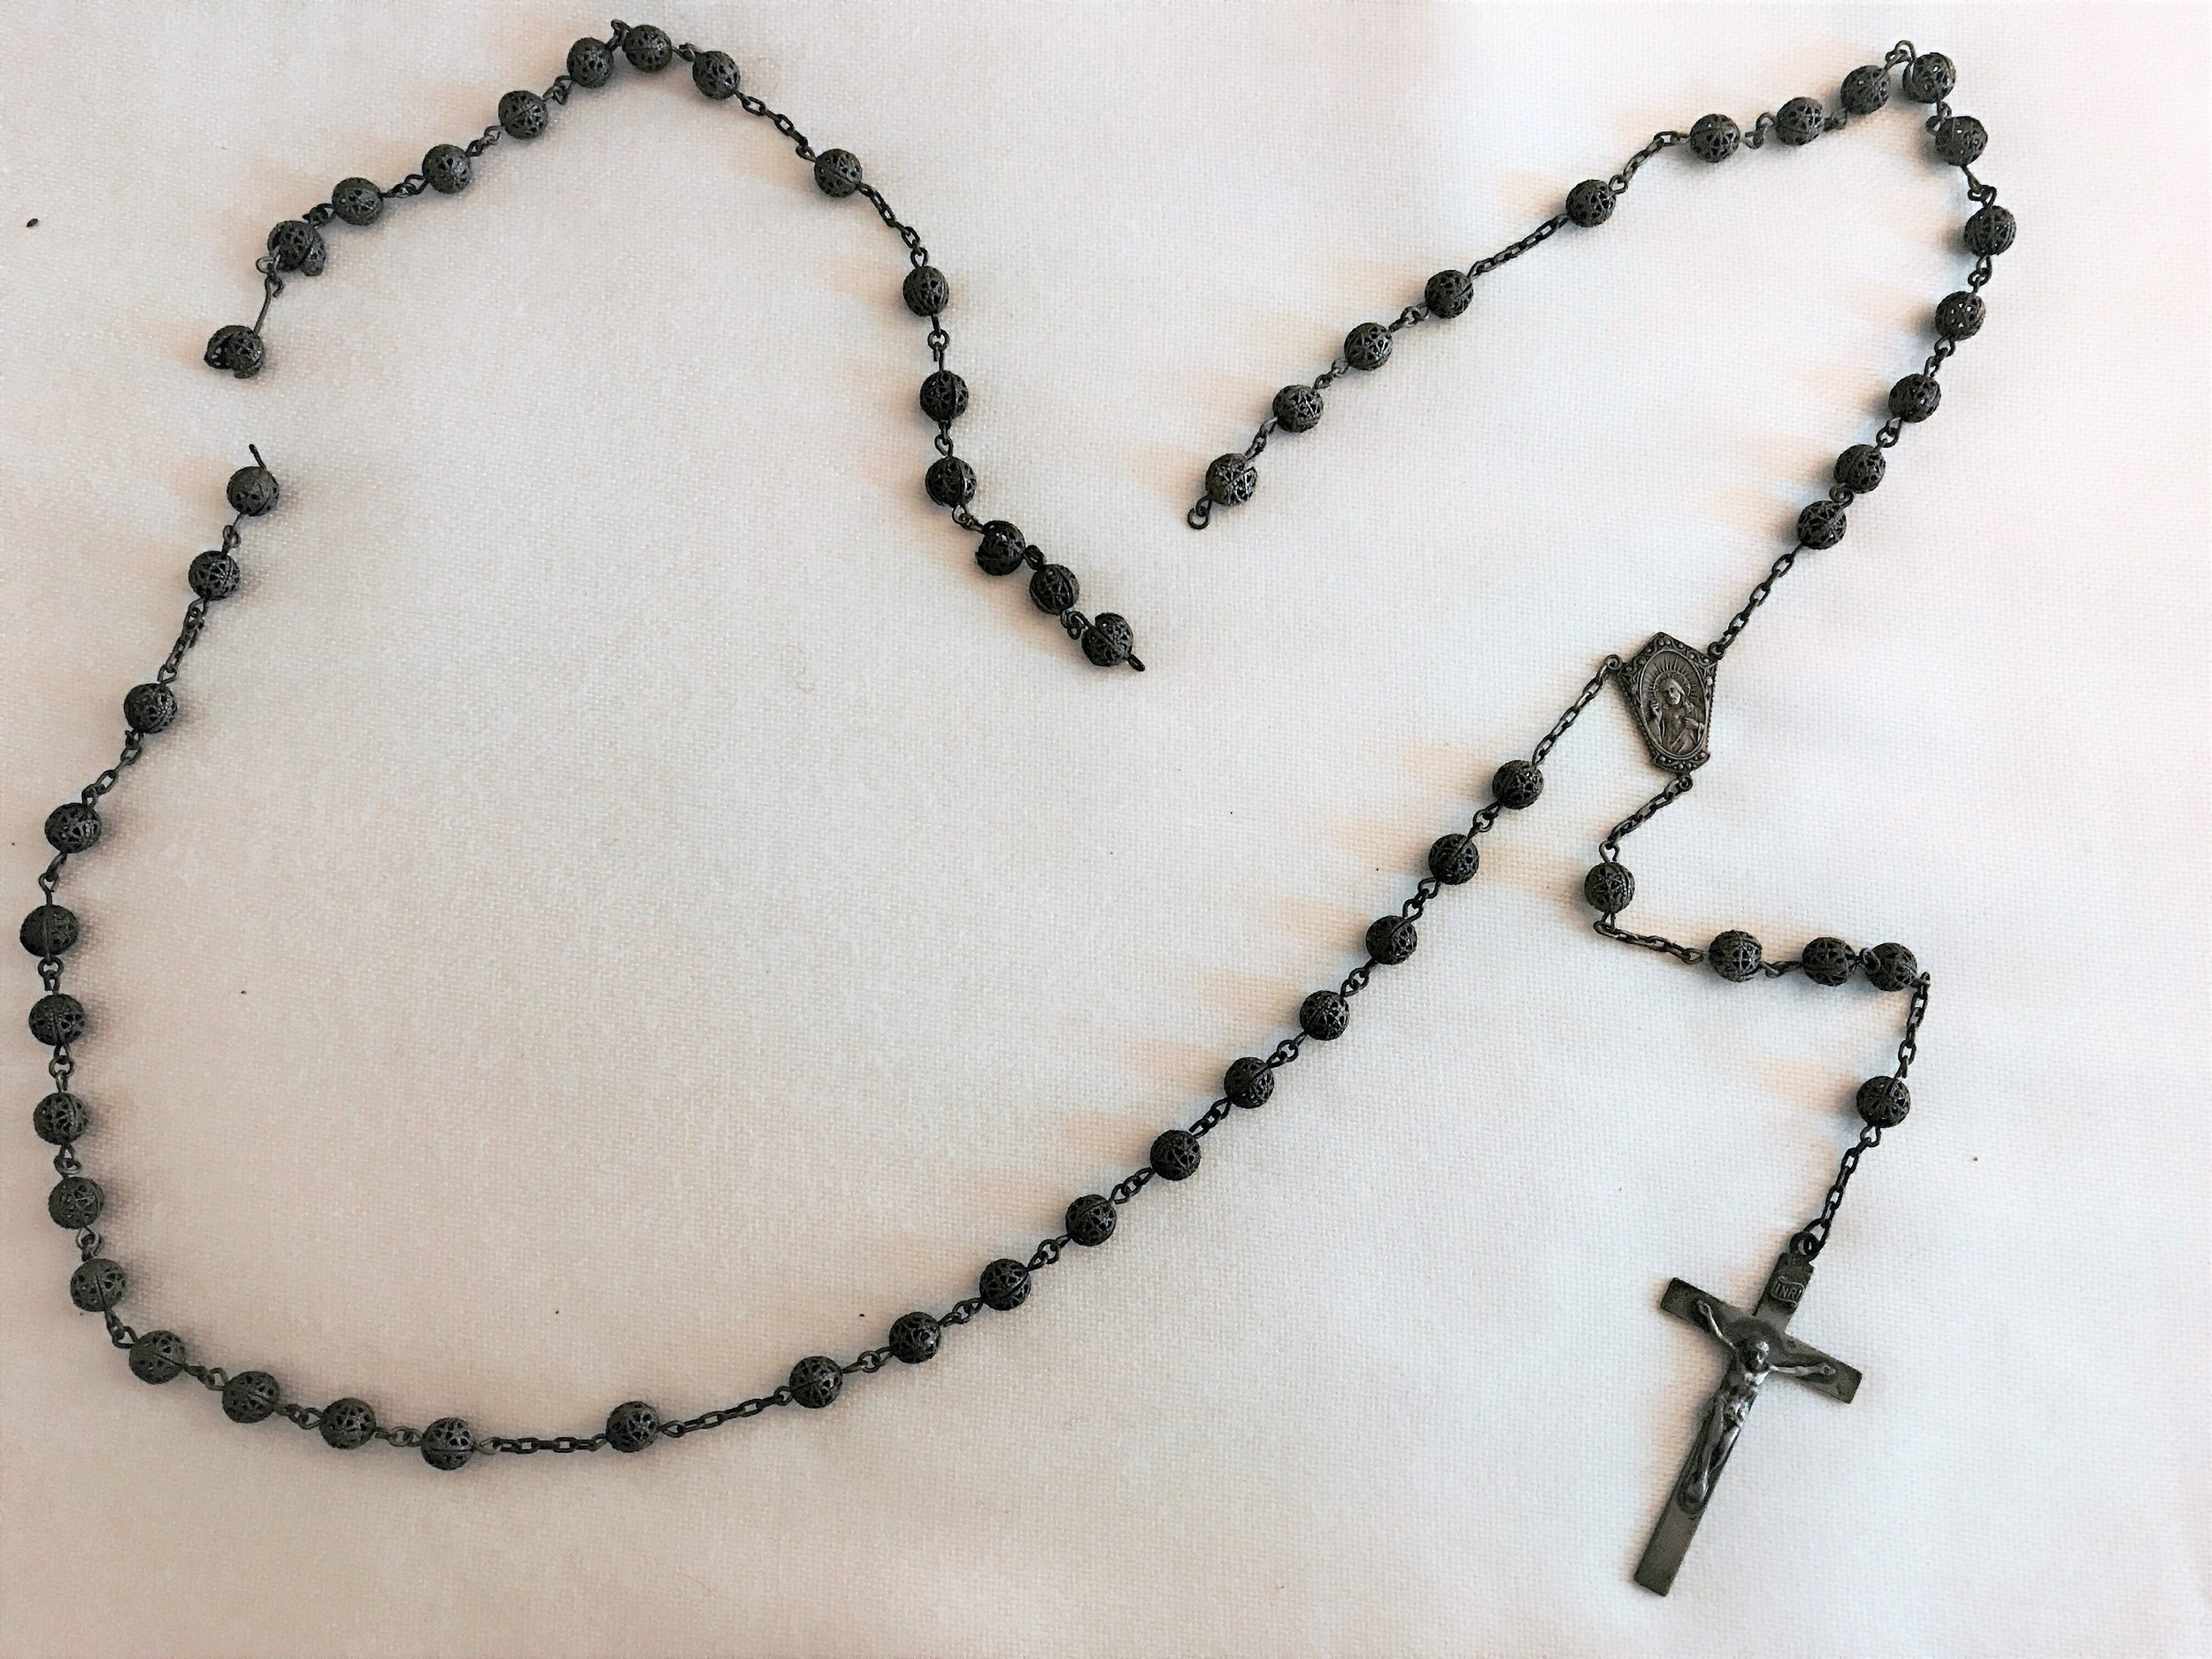 This vintage rosary was made of sterling silver filigree beads with sterling silver crucifix and centerpiece. Two of the beads were badly damaged and the rosary itself was so tarnished that it appeared black.